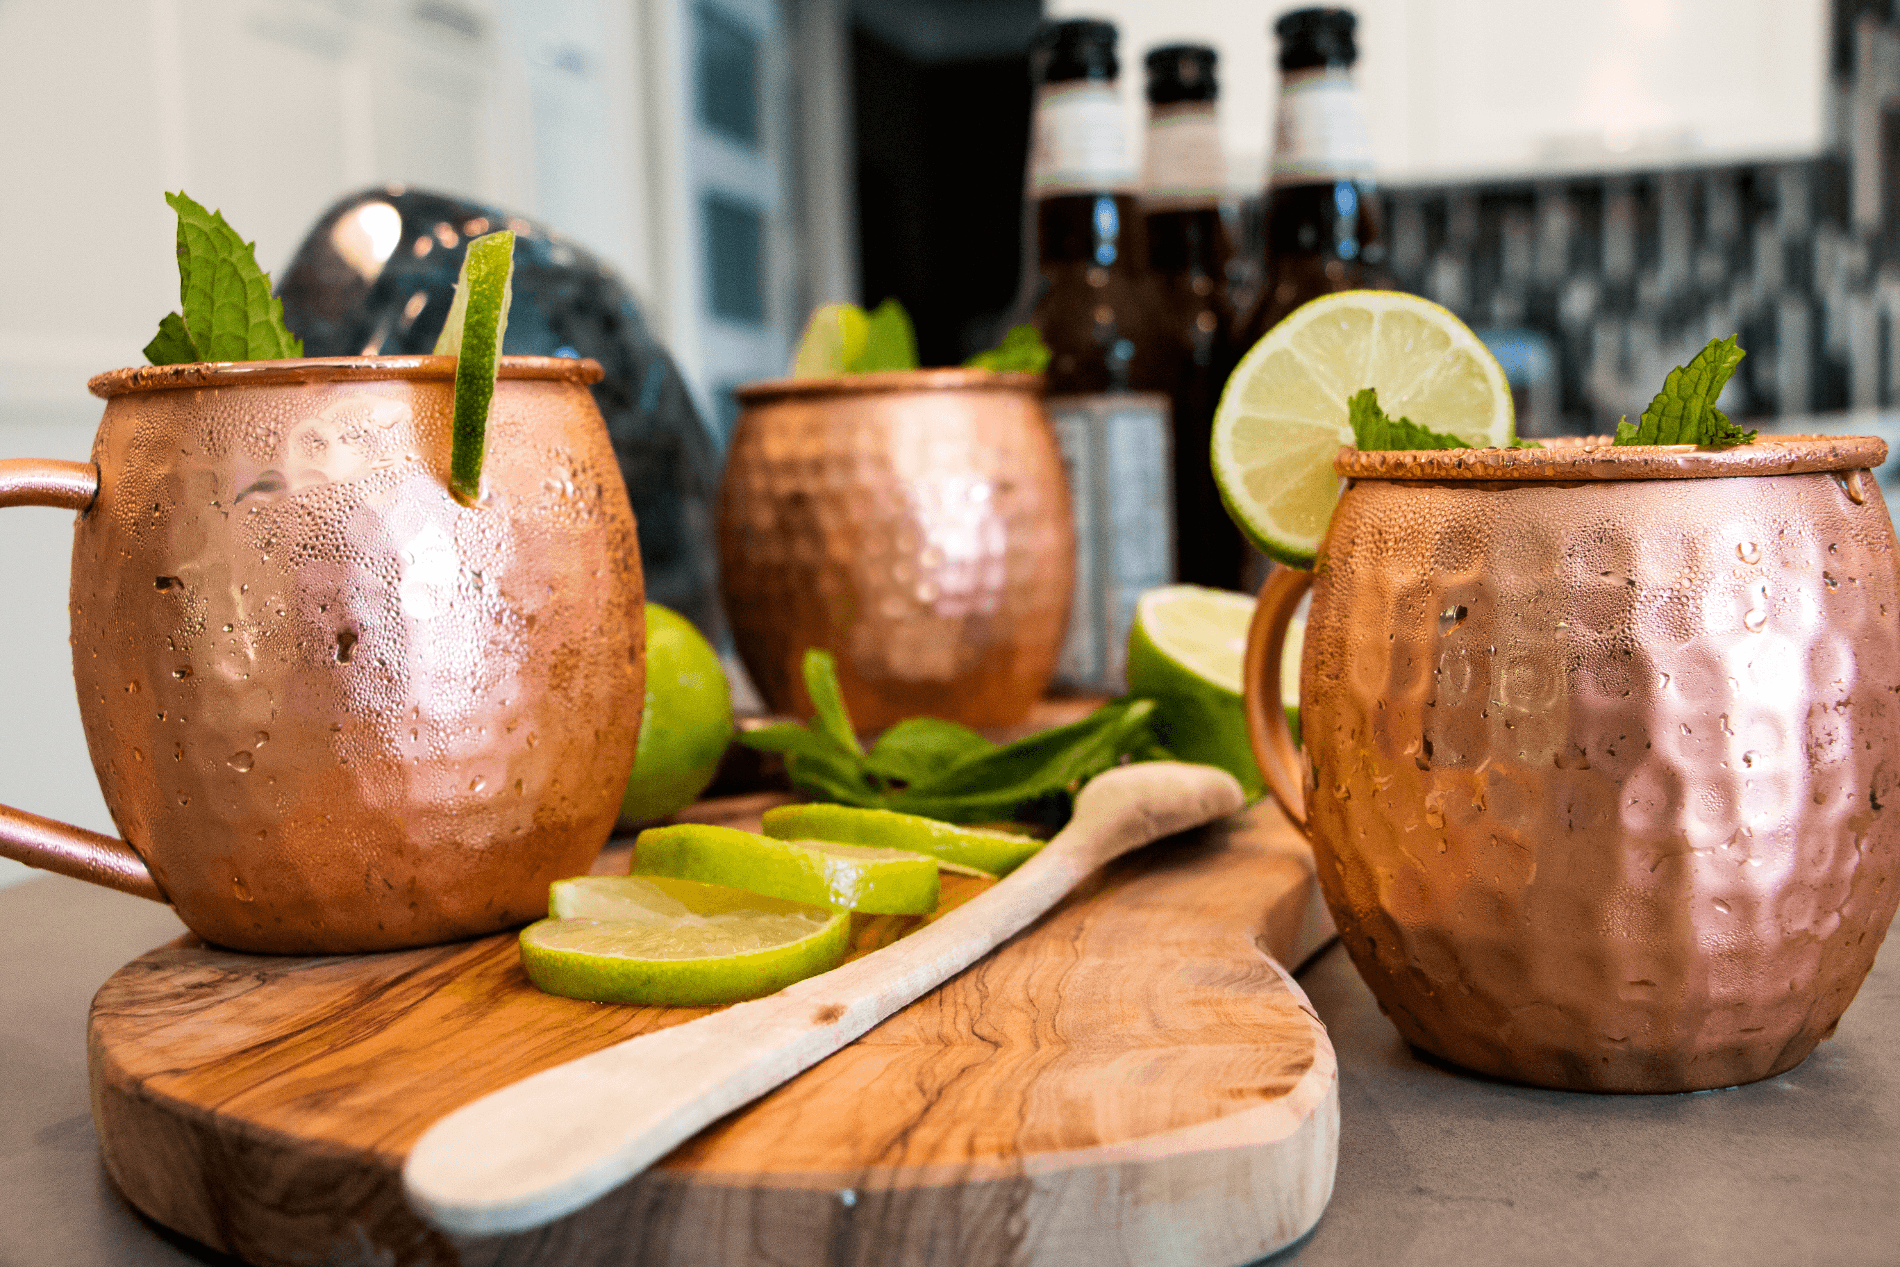 Urban Vintage LA Moscow Mule Copper Mugs in Kitchen Showing Preparation of Moscow Mule Cocktail with Kitchen in Background